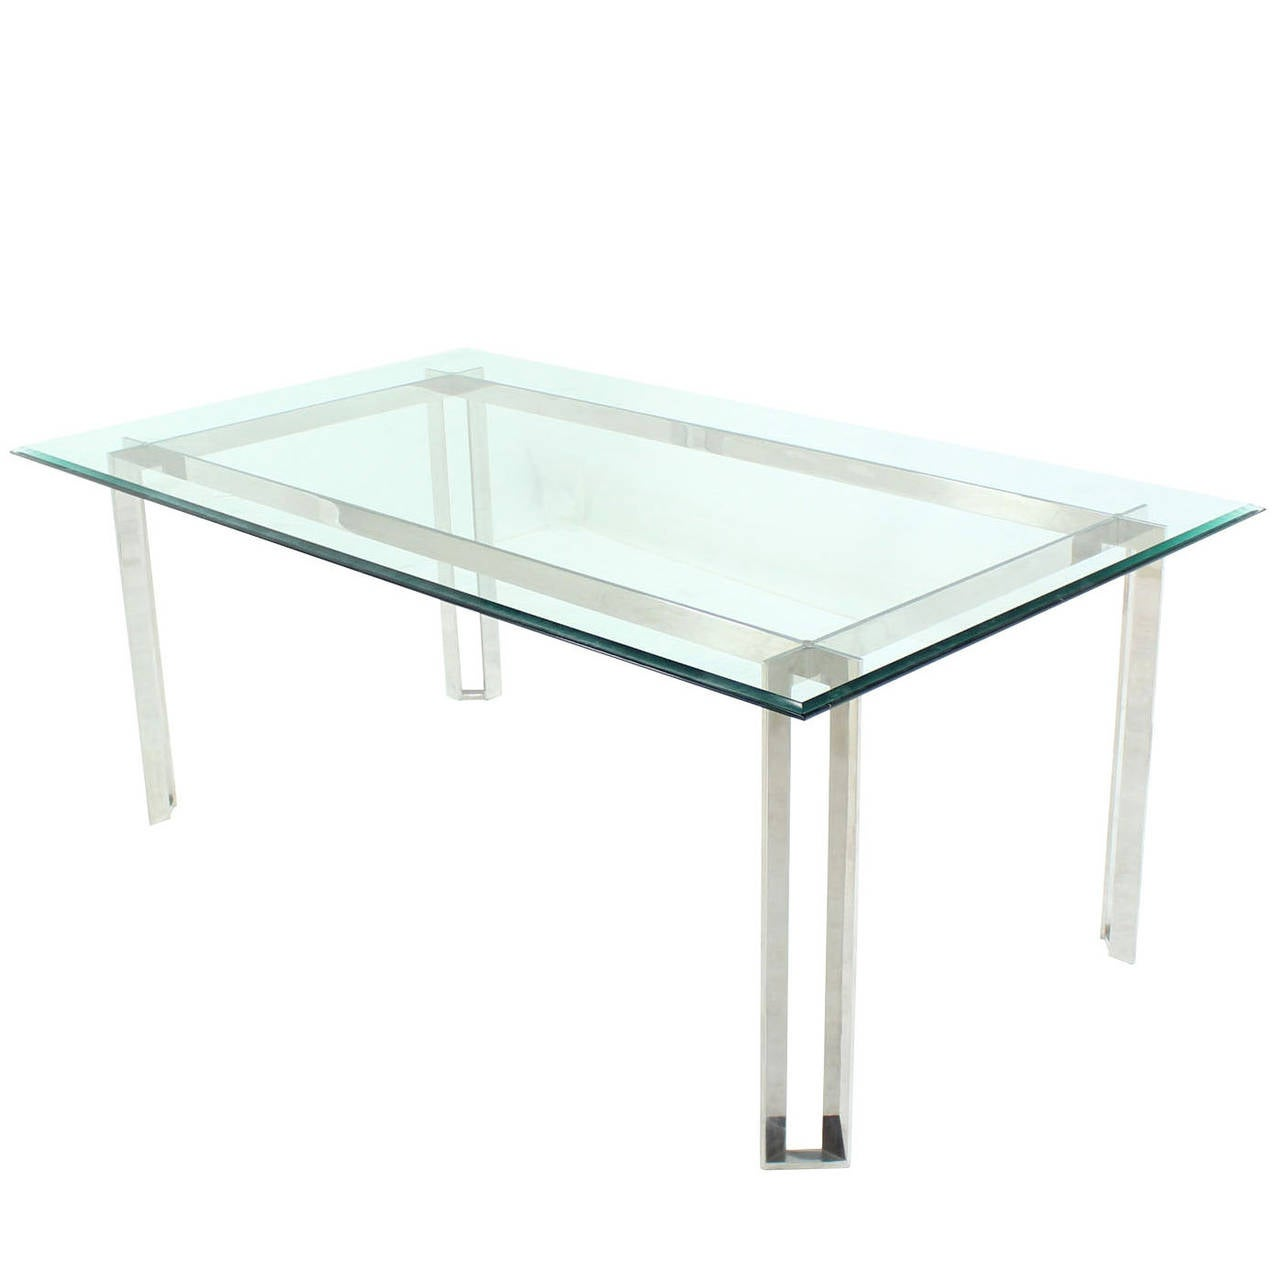 Polished stainless steel and thick glass top dining room for Glass dining table